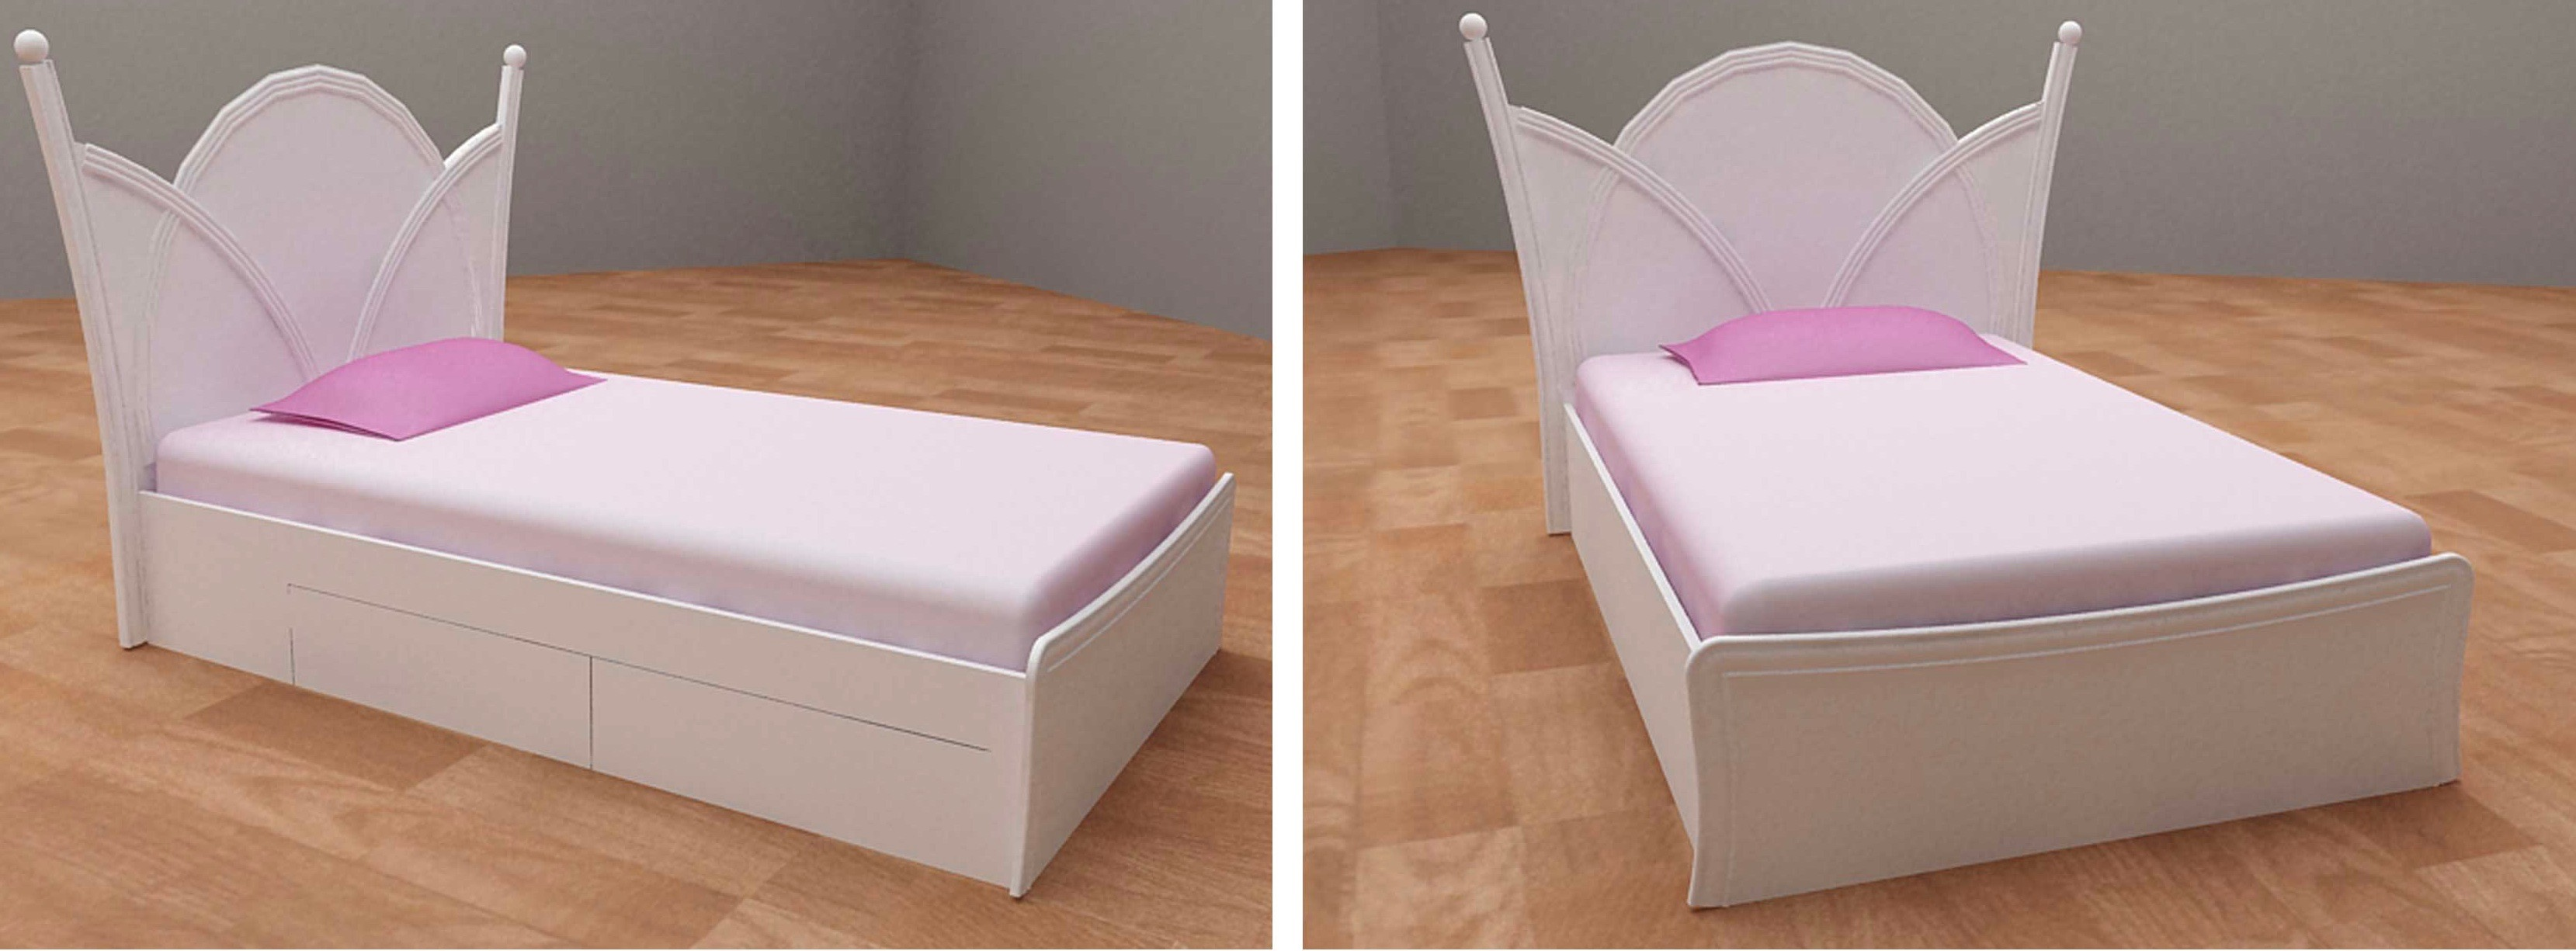 Bed Set with Unique Head Rest | SARAÈ